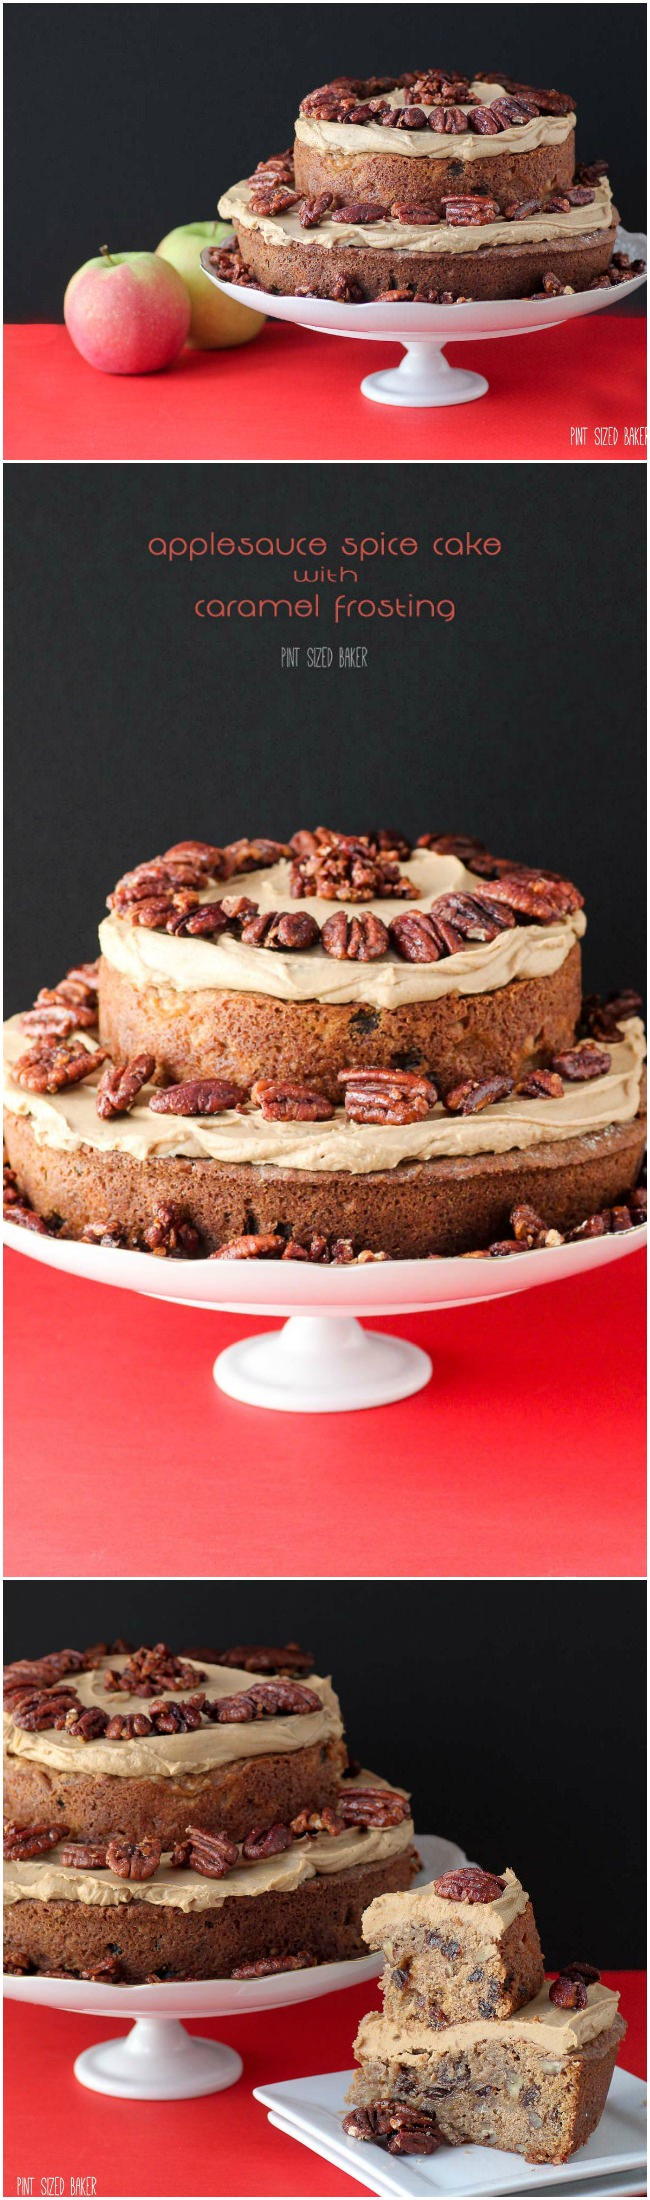 Enjoy an Applesauce Spice Cake with Caramel Frosting! It's a great cake full of Autumn flavors of cinnamon, cloves and apples. YUM!